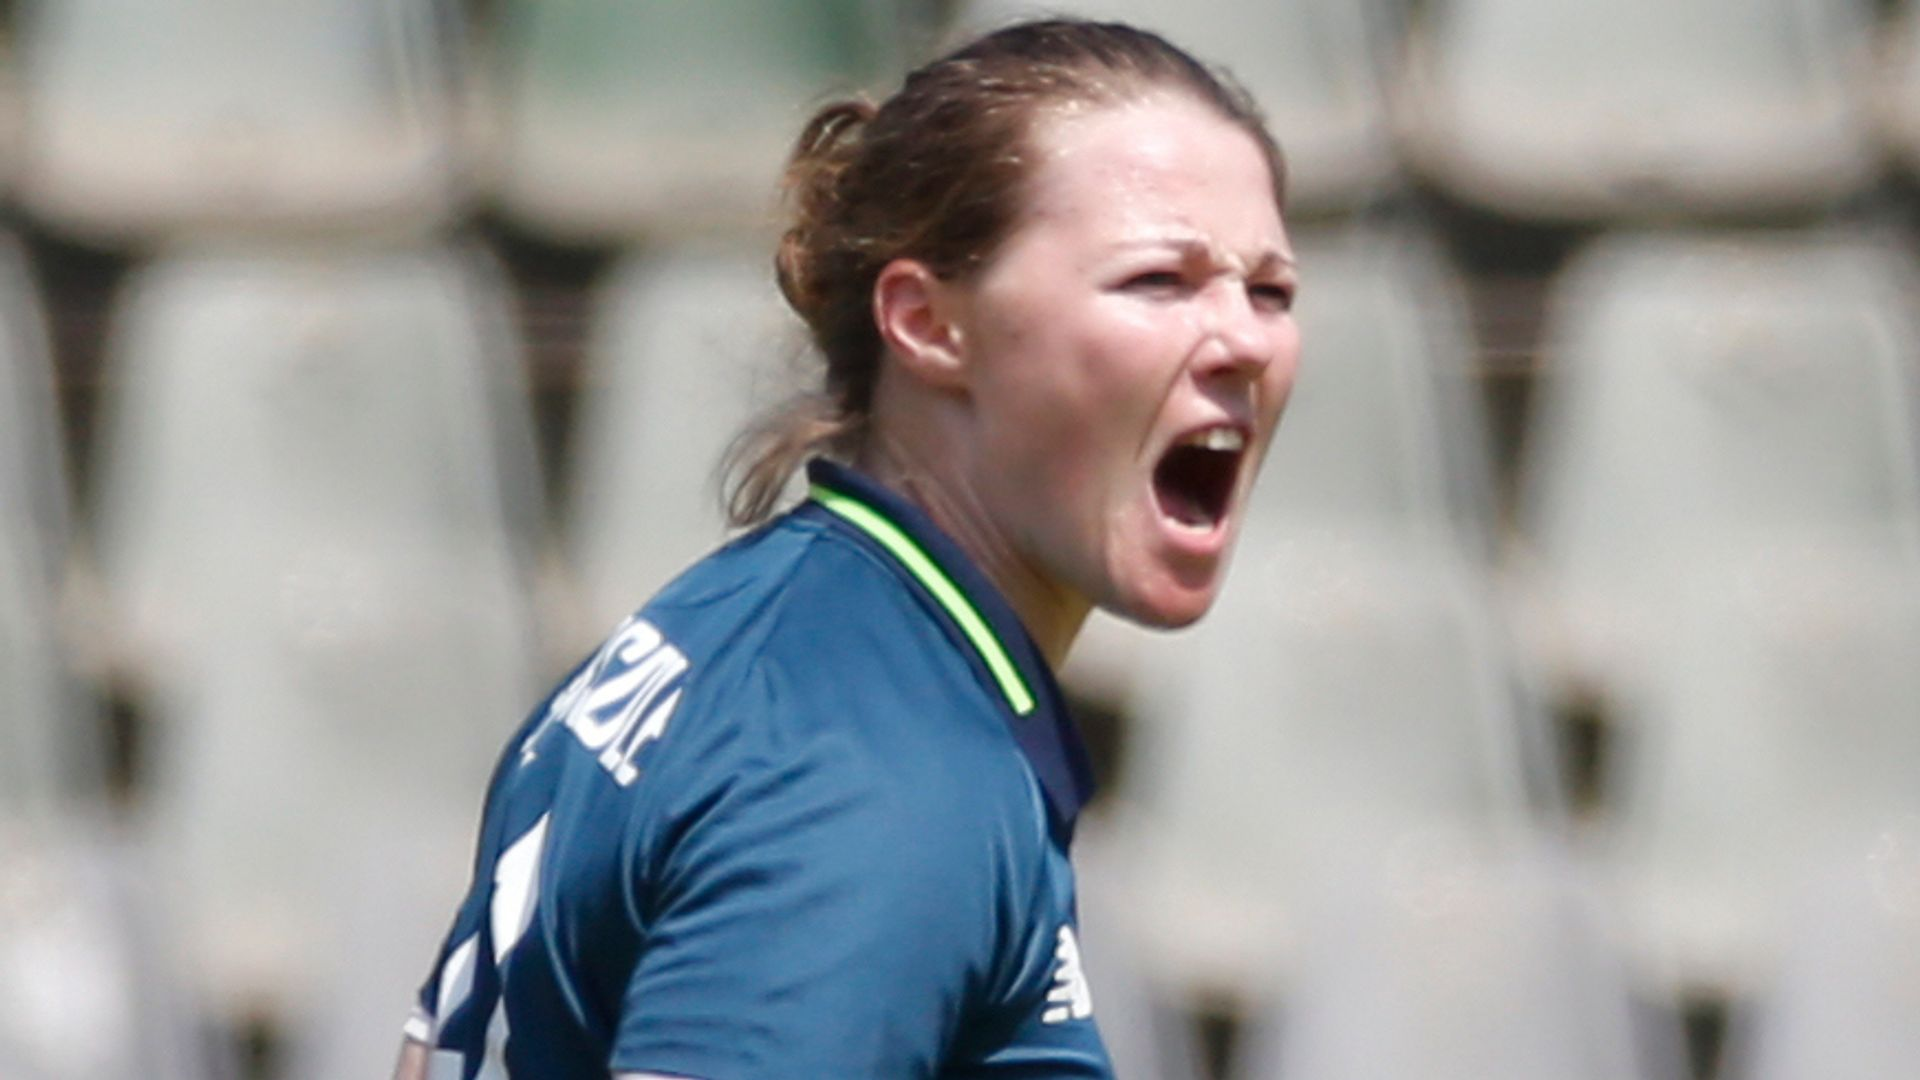 Anya Shrubsole ruled out of England Women's tour of New Zealand due to knee injury